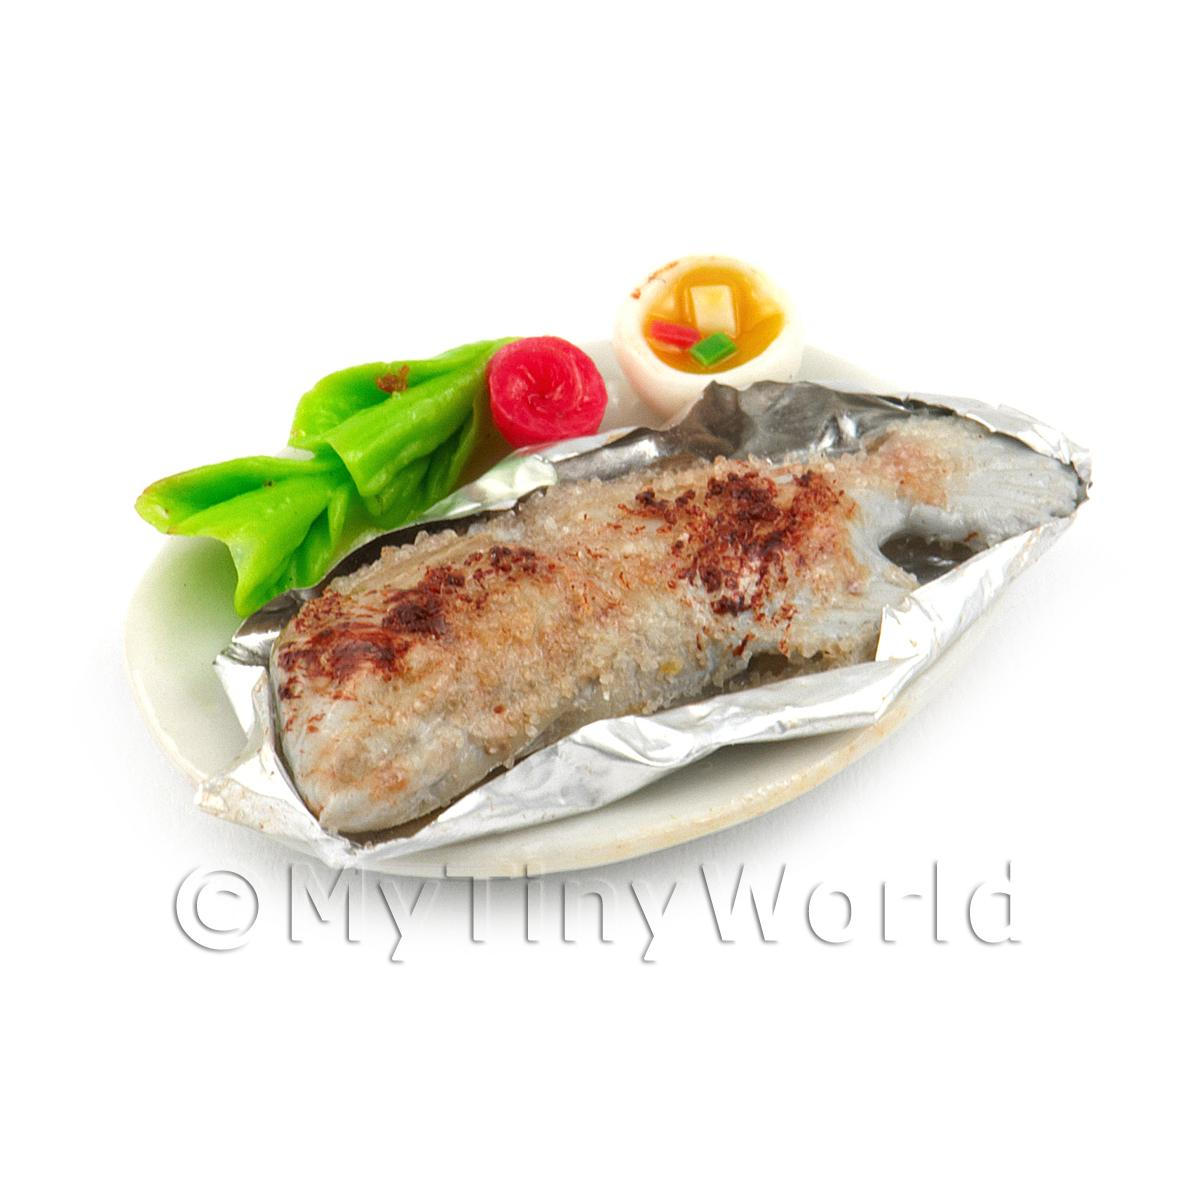 Dolls House Miniature Whole Cooked Steamed Salted Fish With Chilli Dip